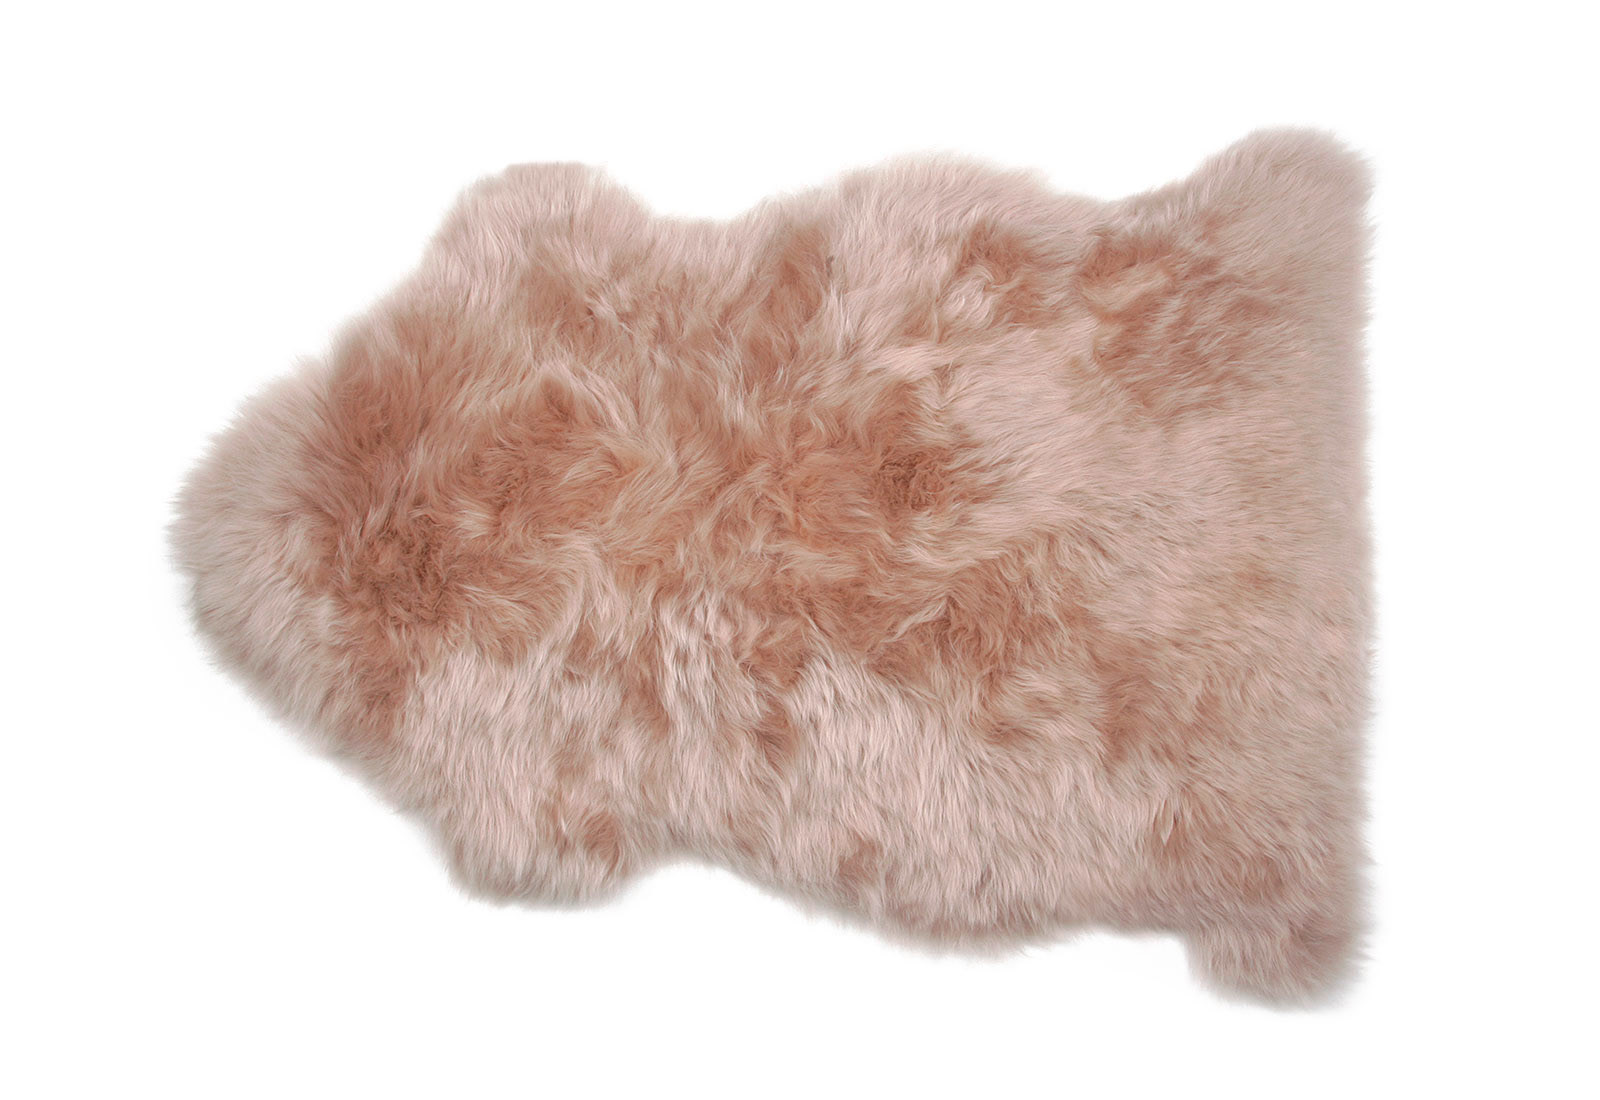 Toffee Taupe Sheepskin Fur Rug